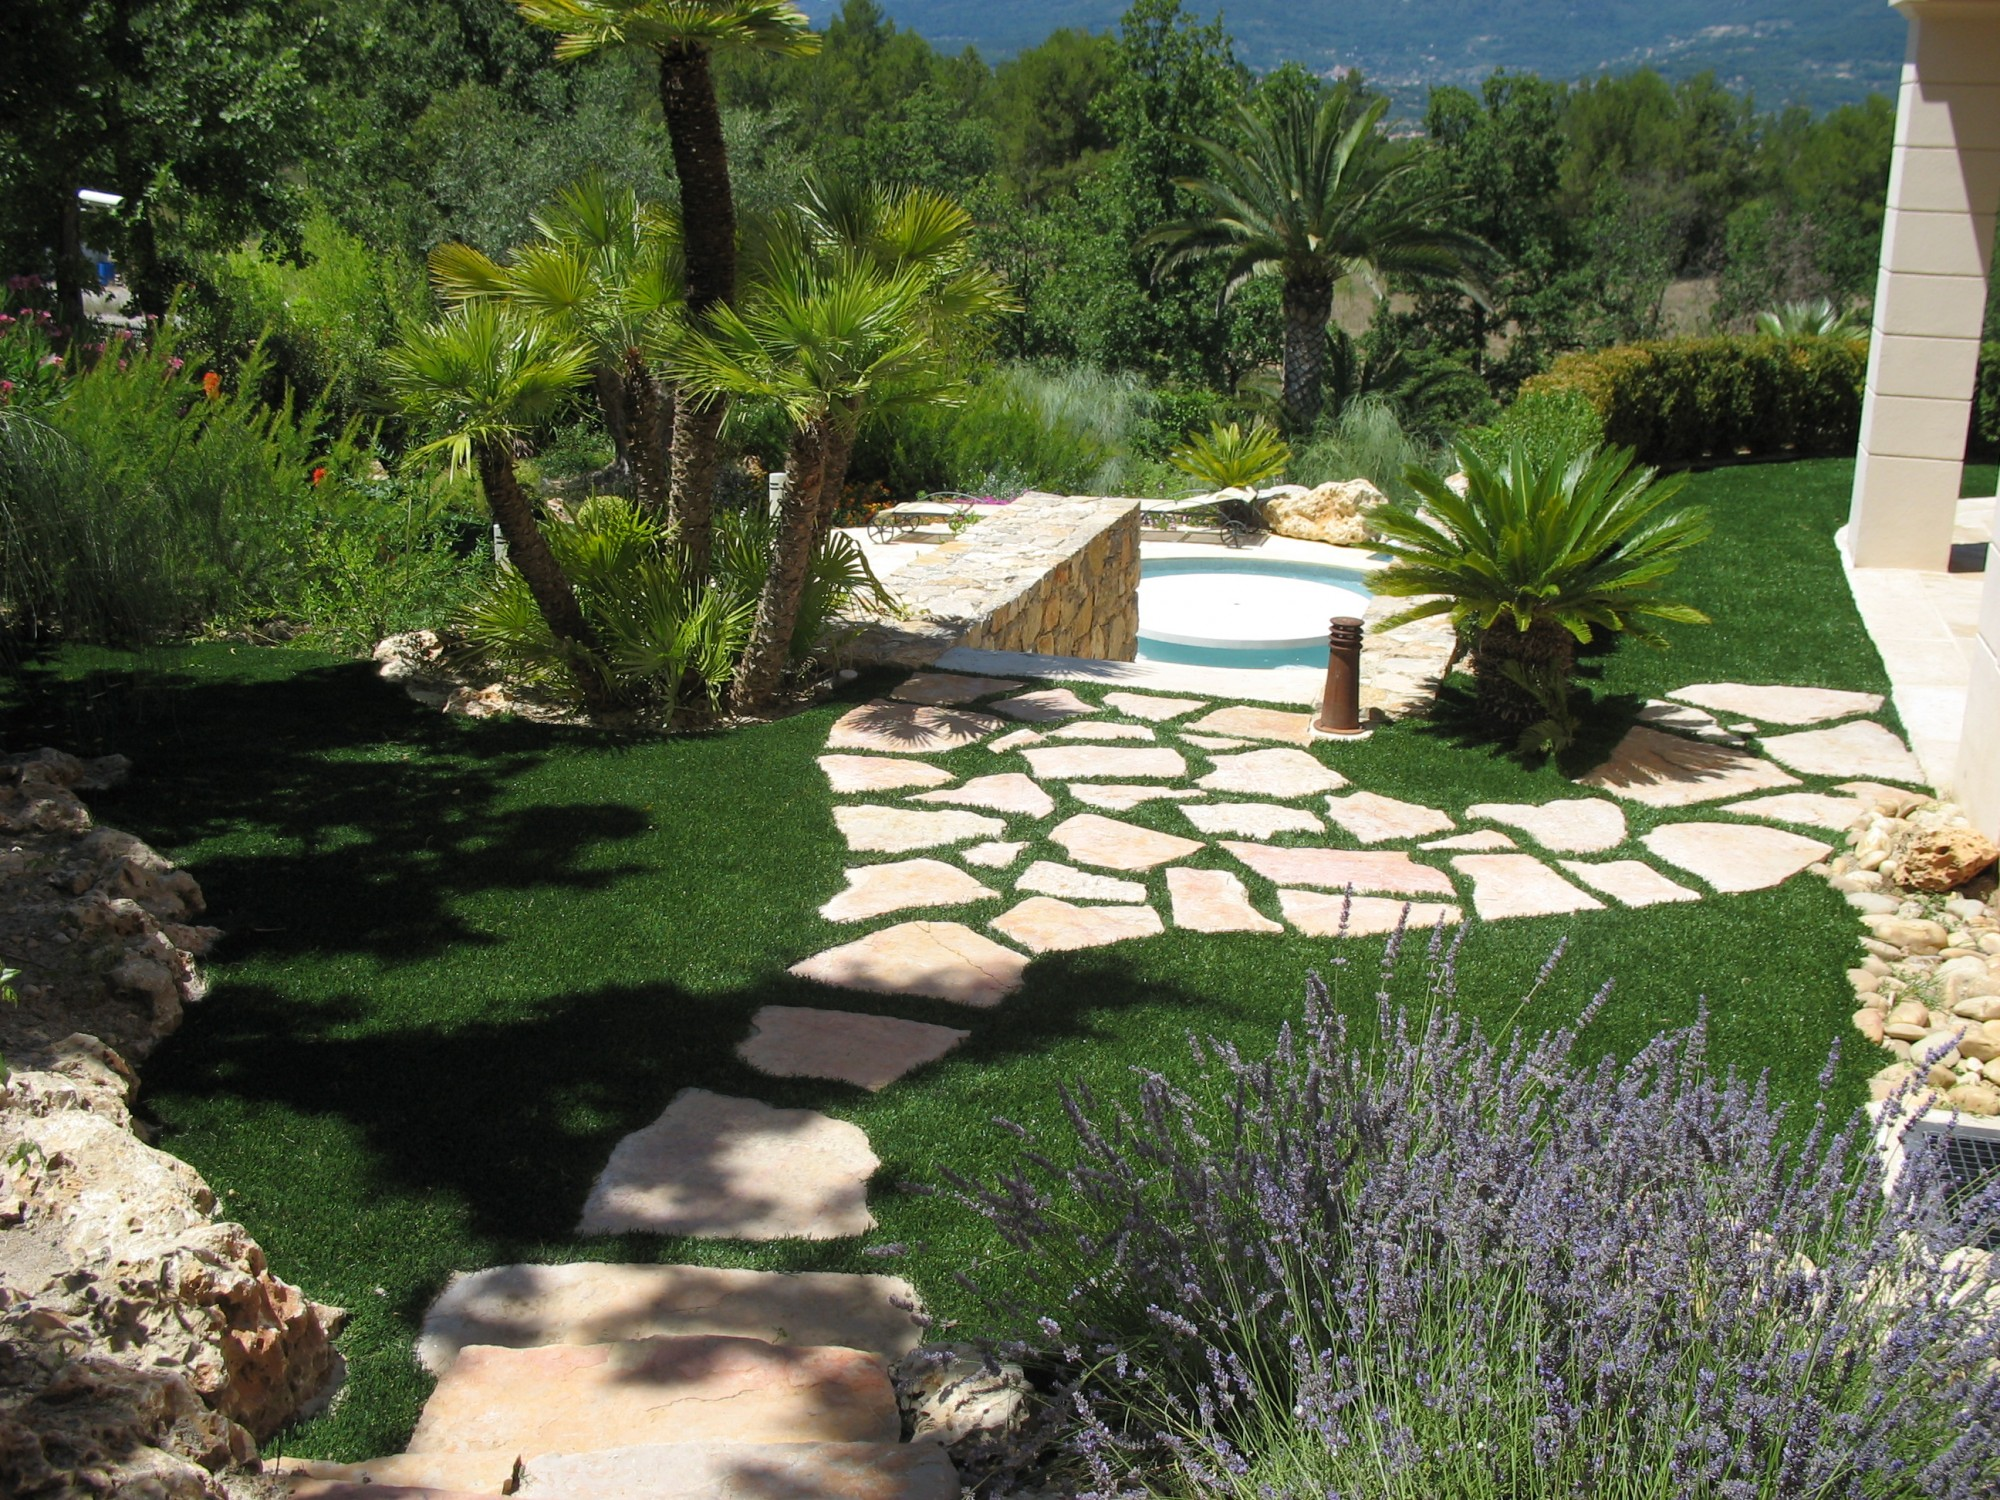 Am nagement d 39 un jardin synth tique saint tropez la pose for Agencement du jardin